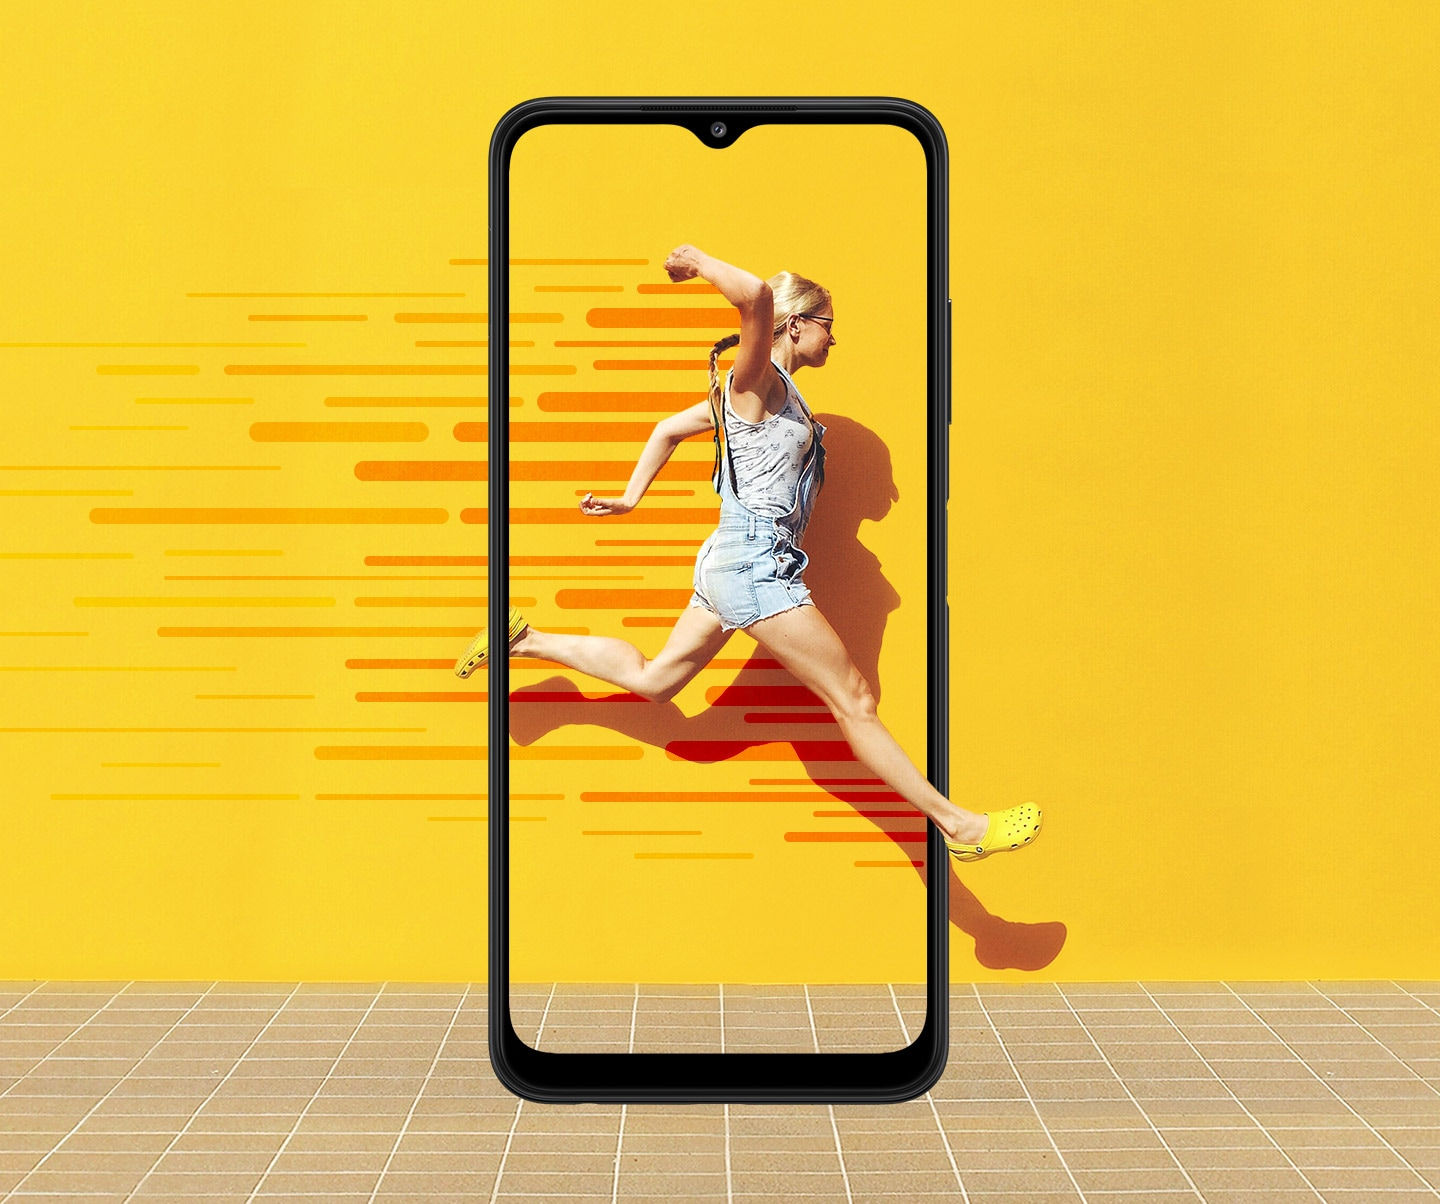 A Galaxy A22 5G is seen from the front. Onscreen, a woman leaps forward against a yellow wall, with red lines demonstrating motion. Her movement expands beyond the phone's display.